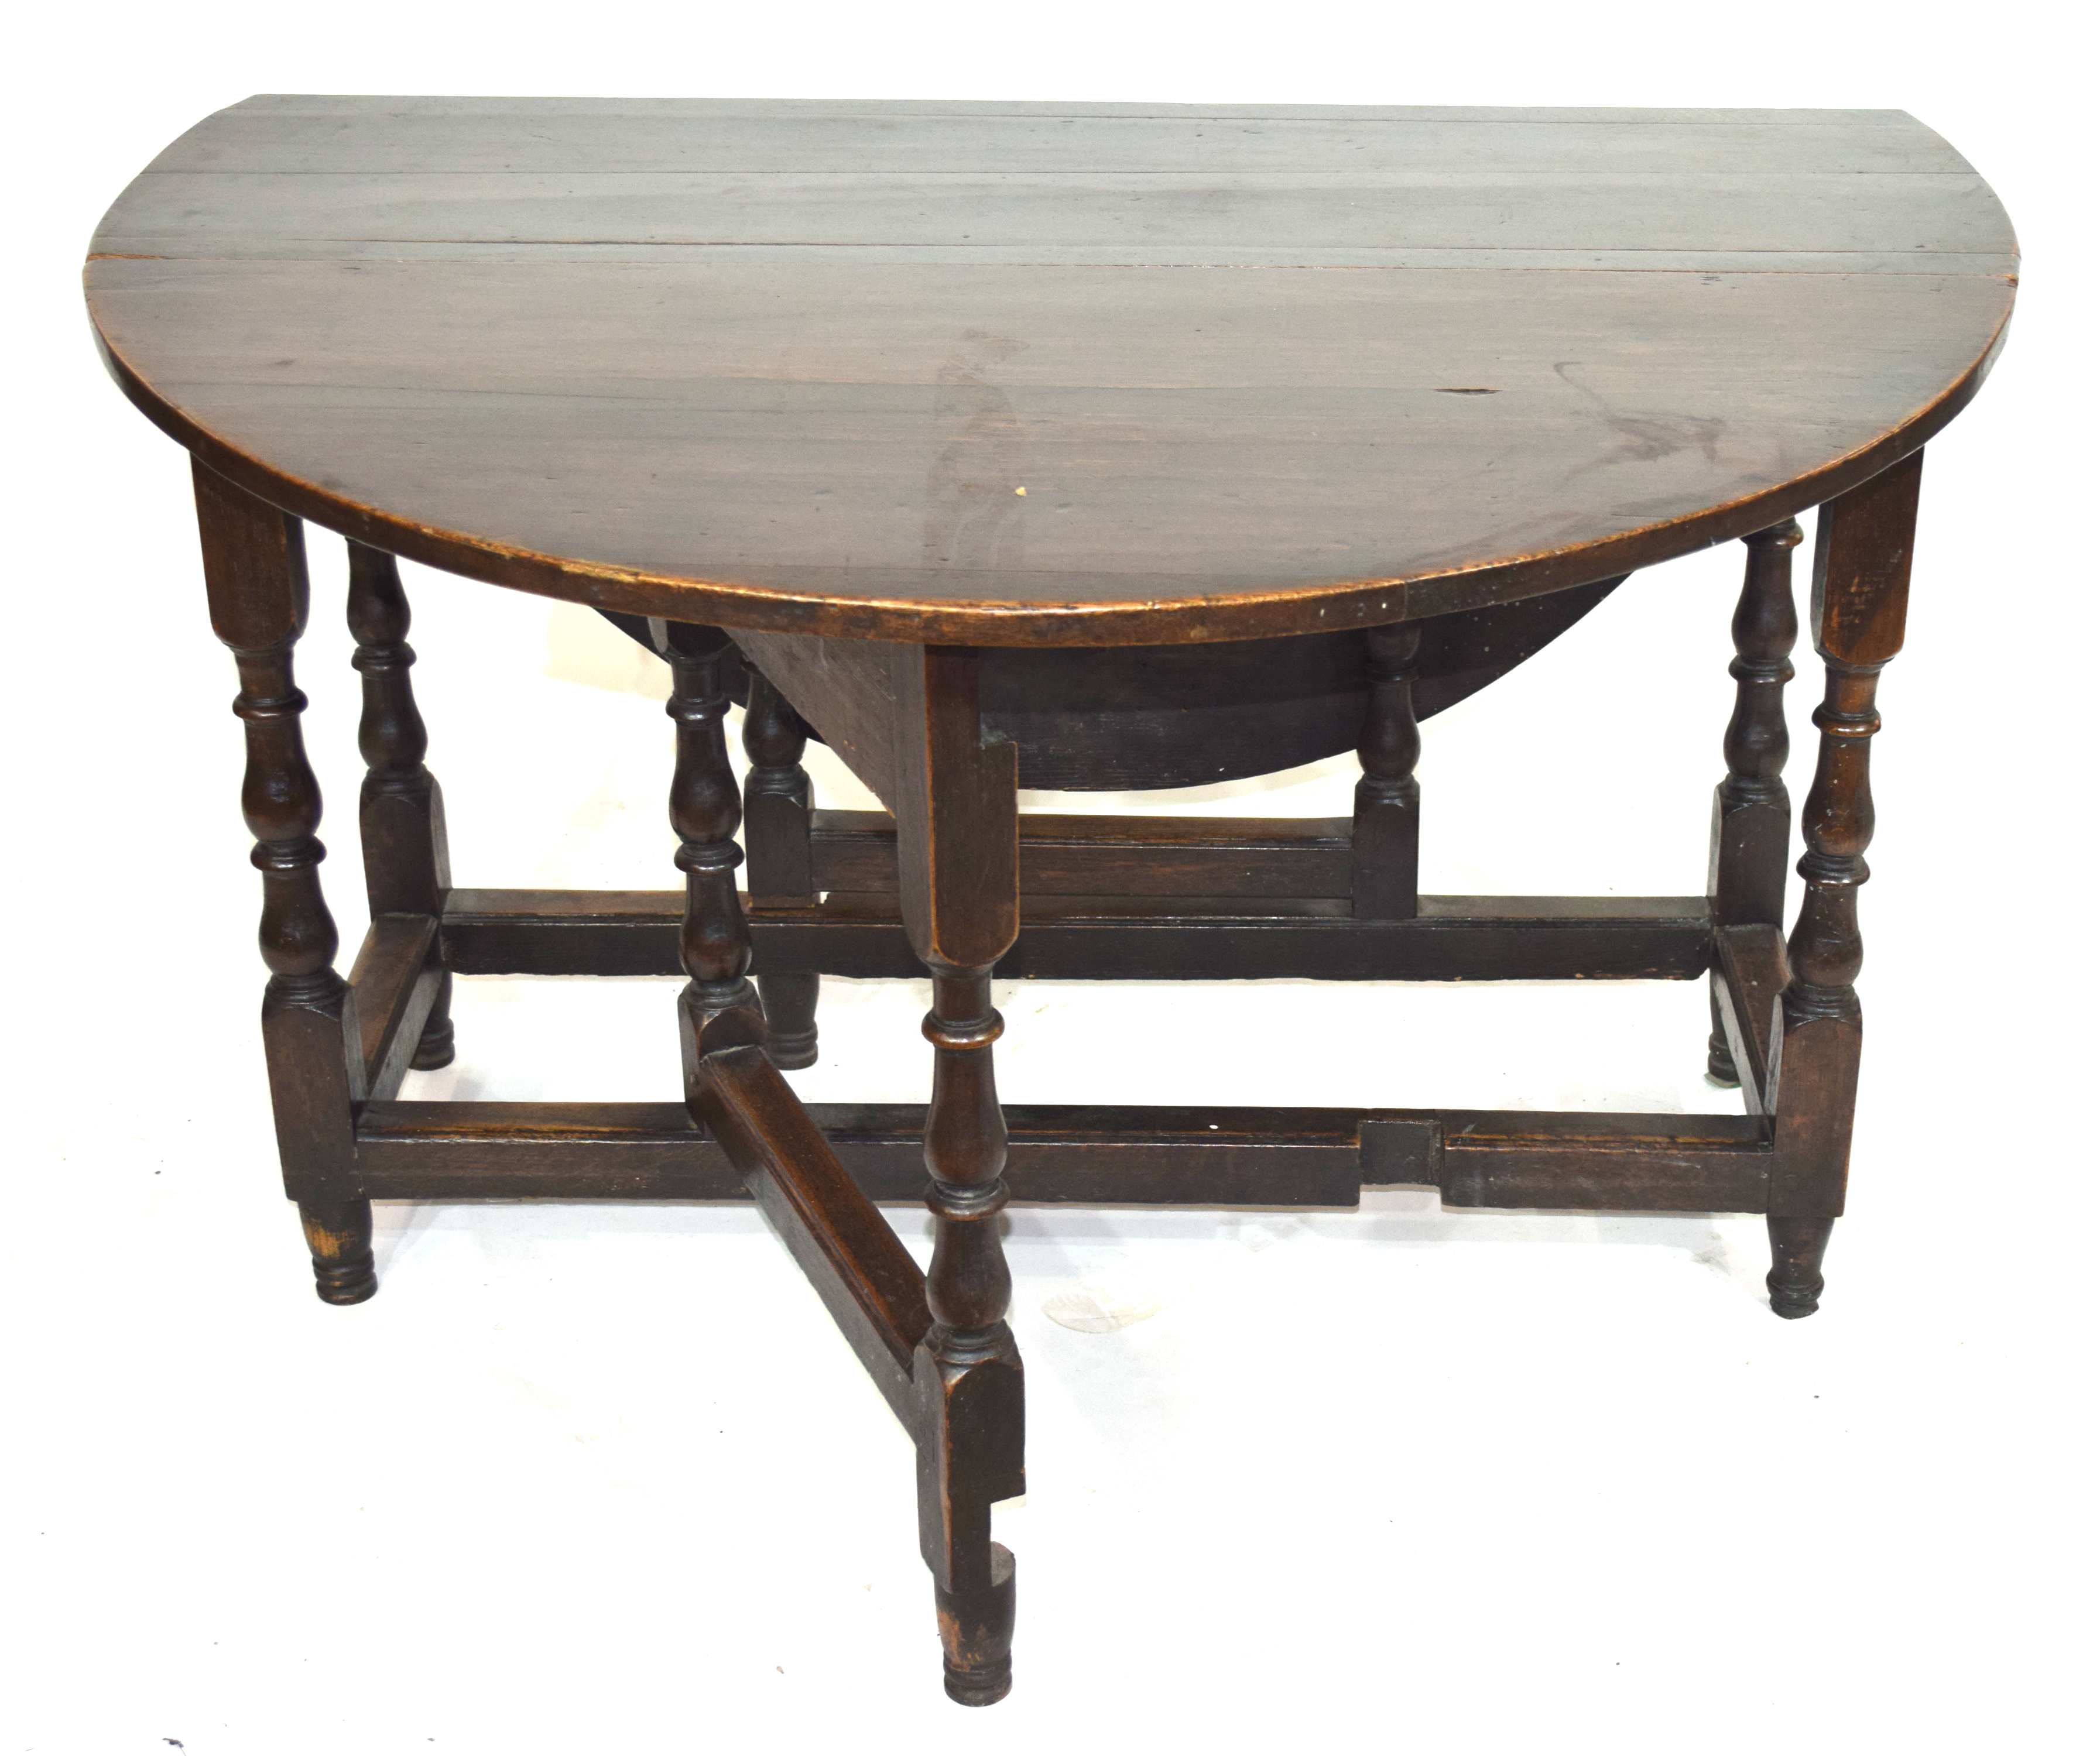 18th century oval oak gateleg table raised on turned legs, 120cm wide Condition: Overall surface - Image 2 of 2